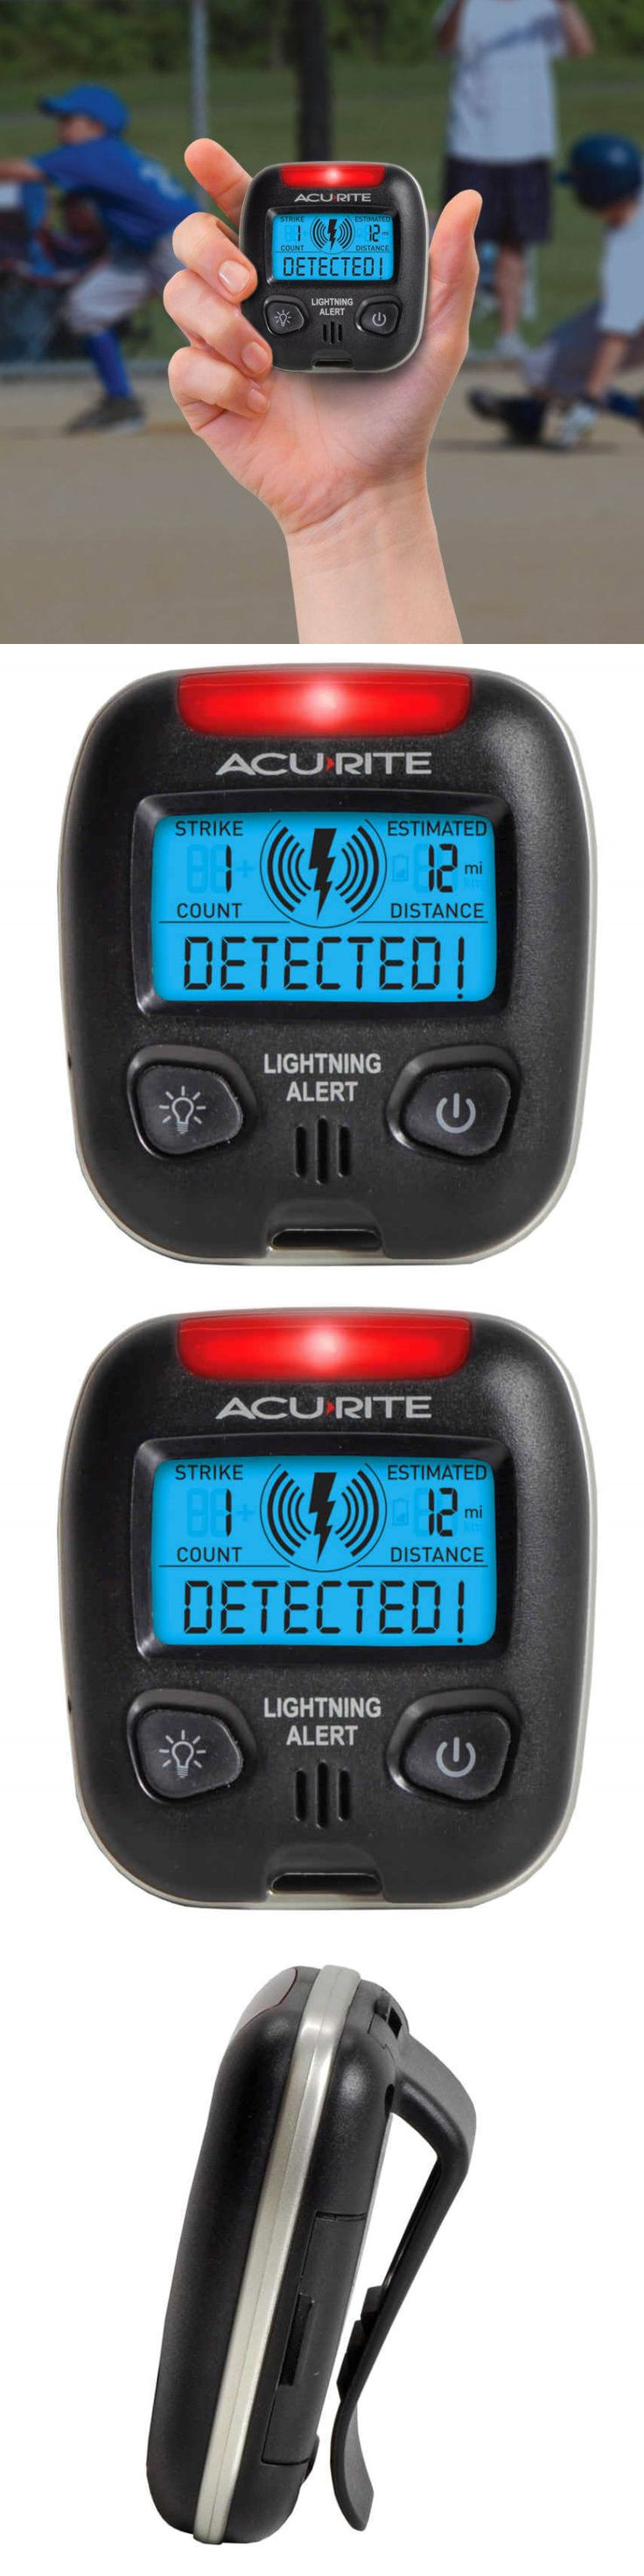 Compasses and GPS 52482: Acurite 02020 Portable Lightning Detector BUY IT NOW ONLY: $37.23